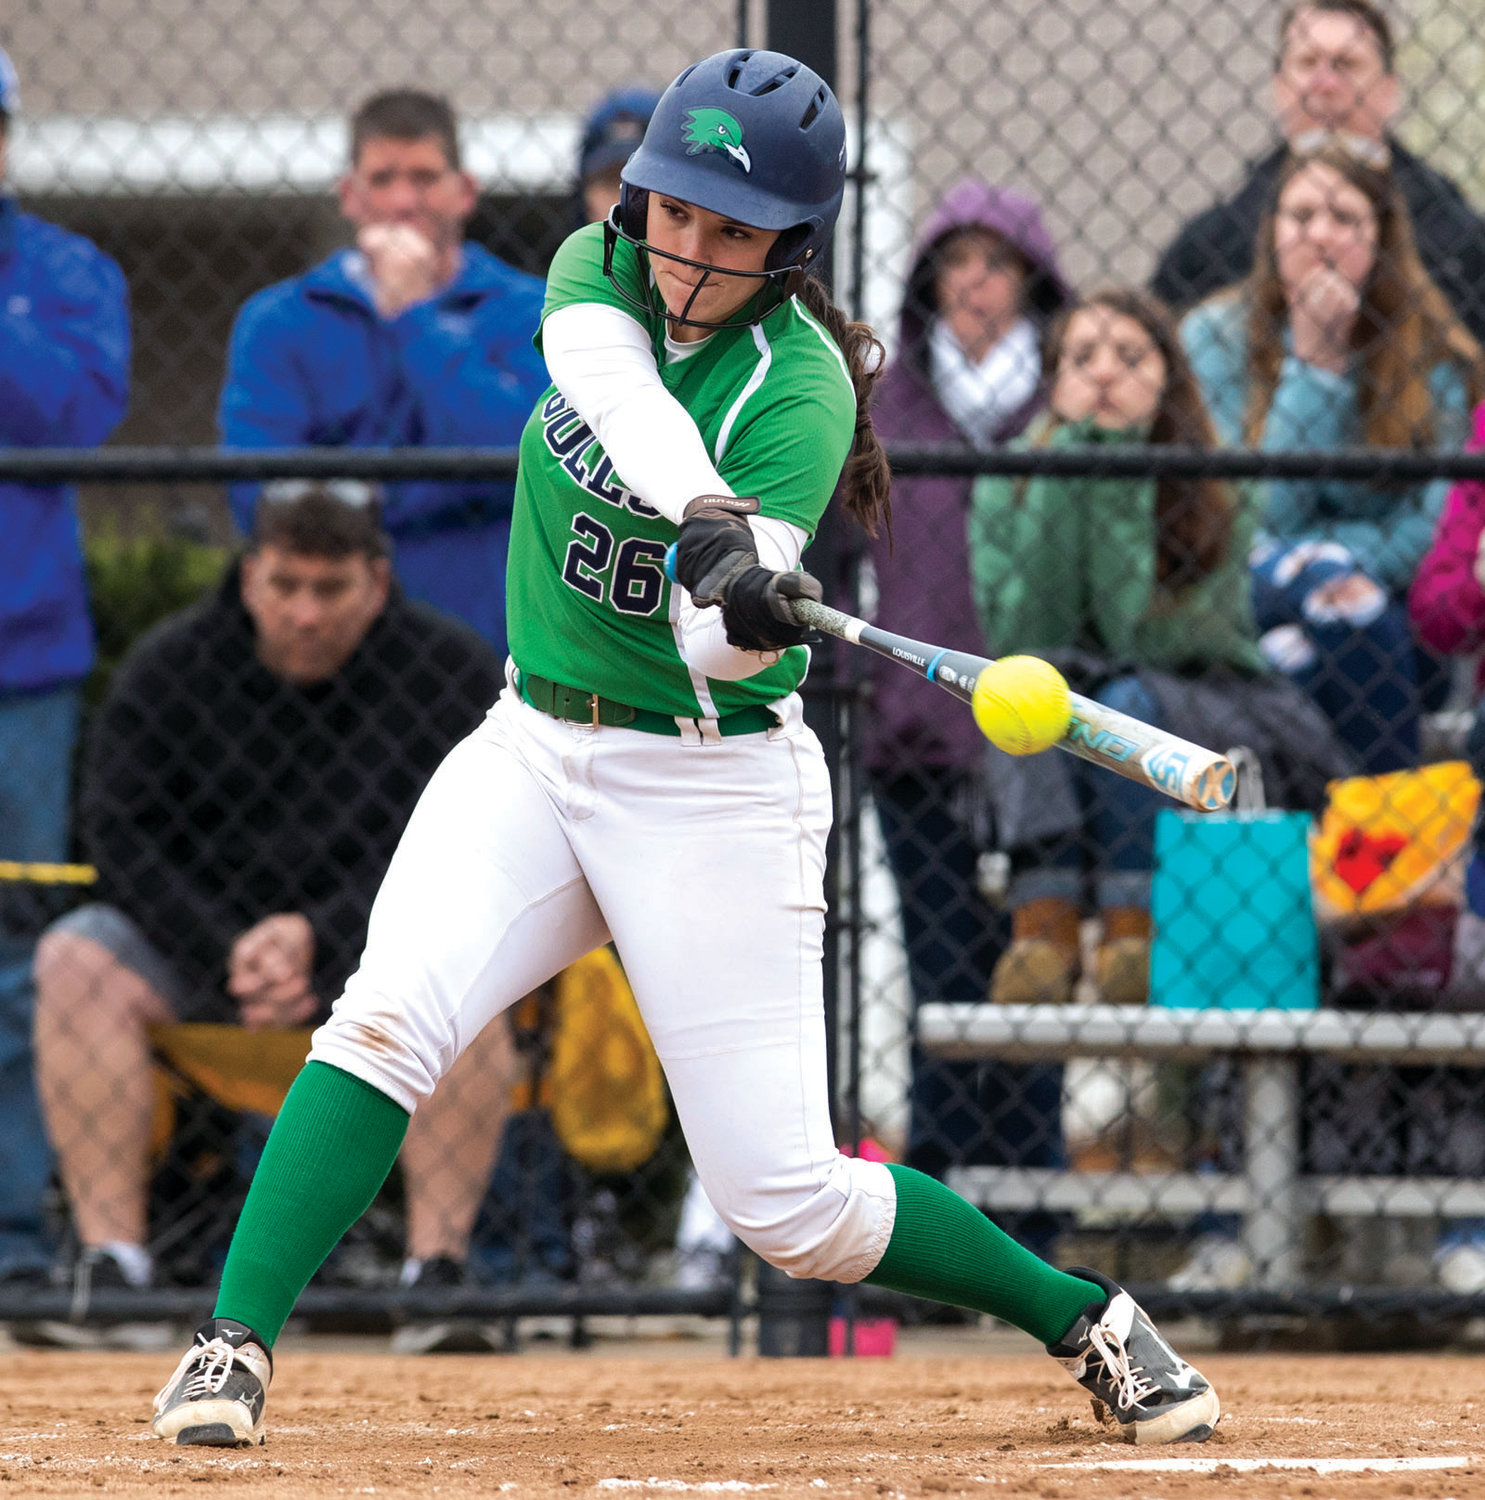 AT THE DISH: Endicott softball player and Toll Gate alumna Jamie Hopgood competes for the Gulls this past season.